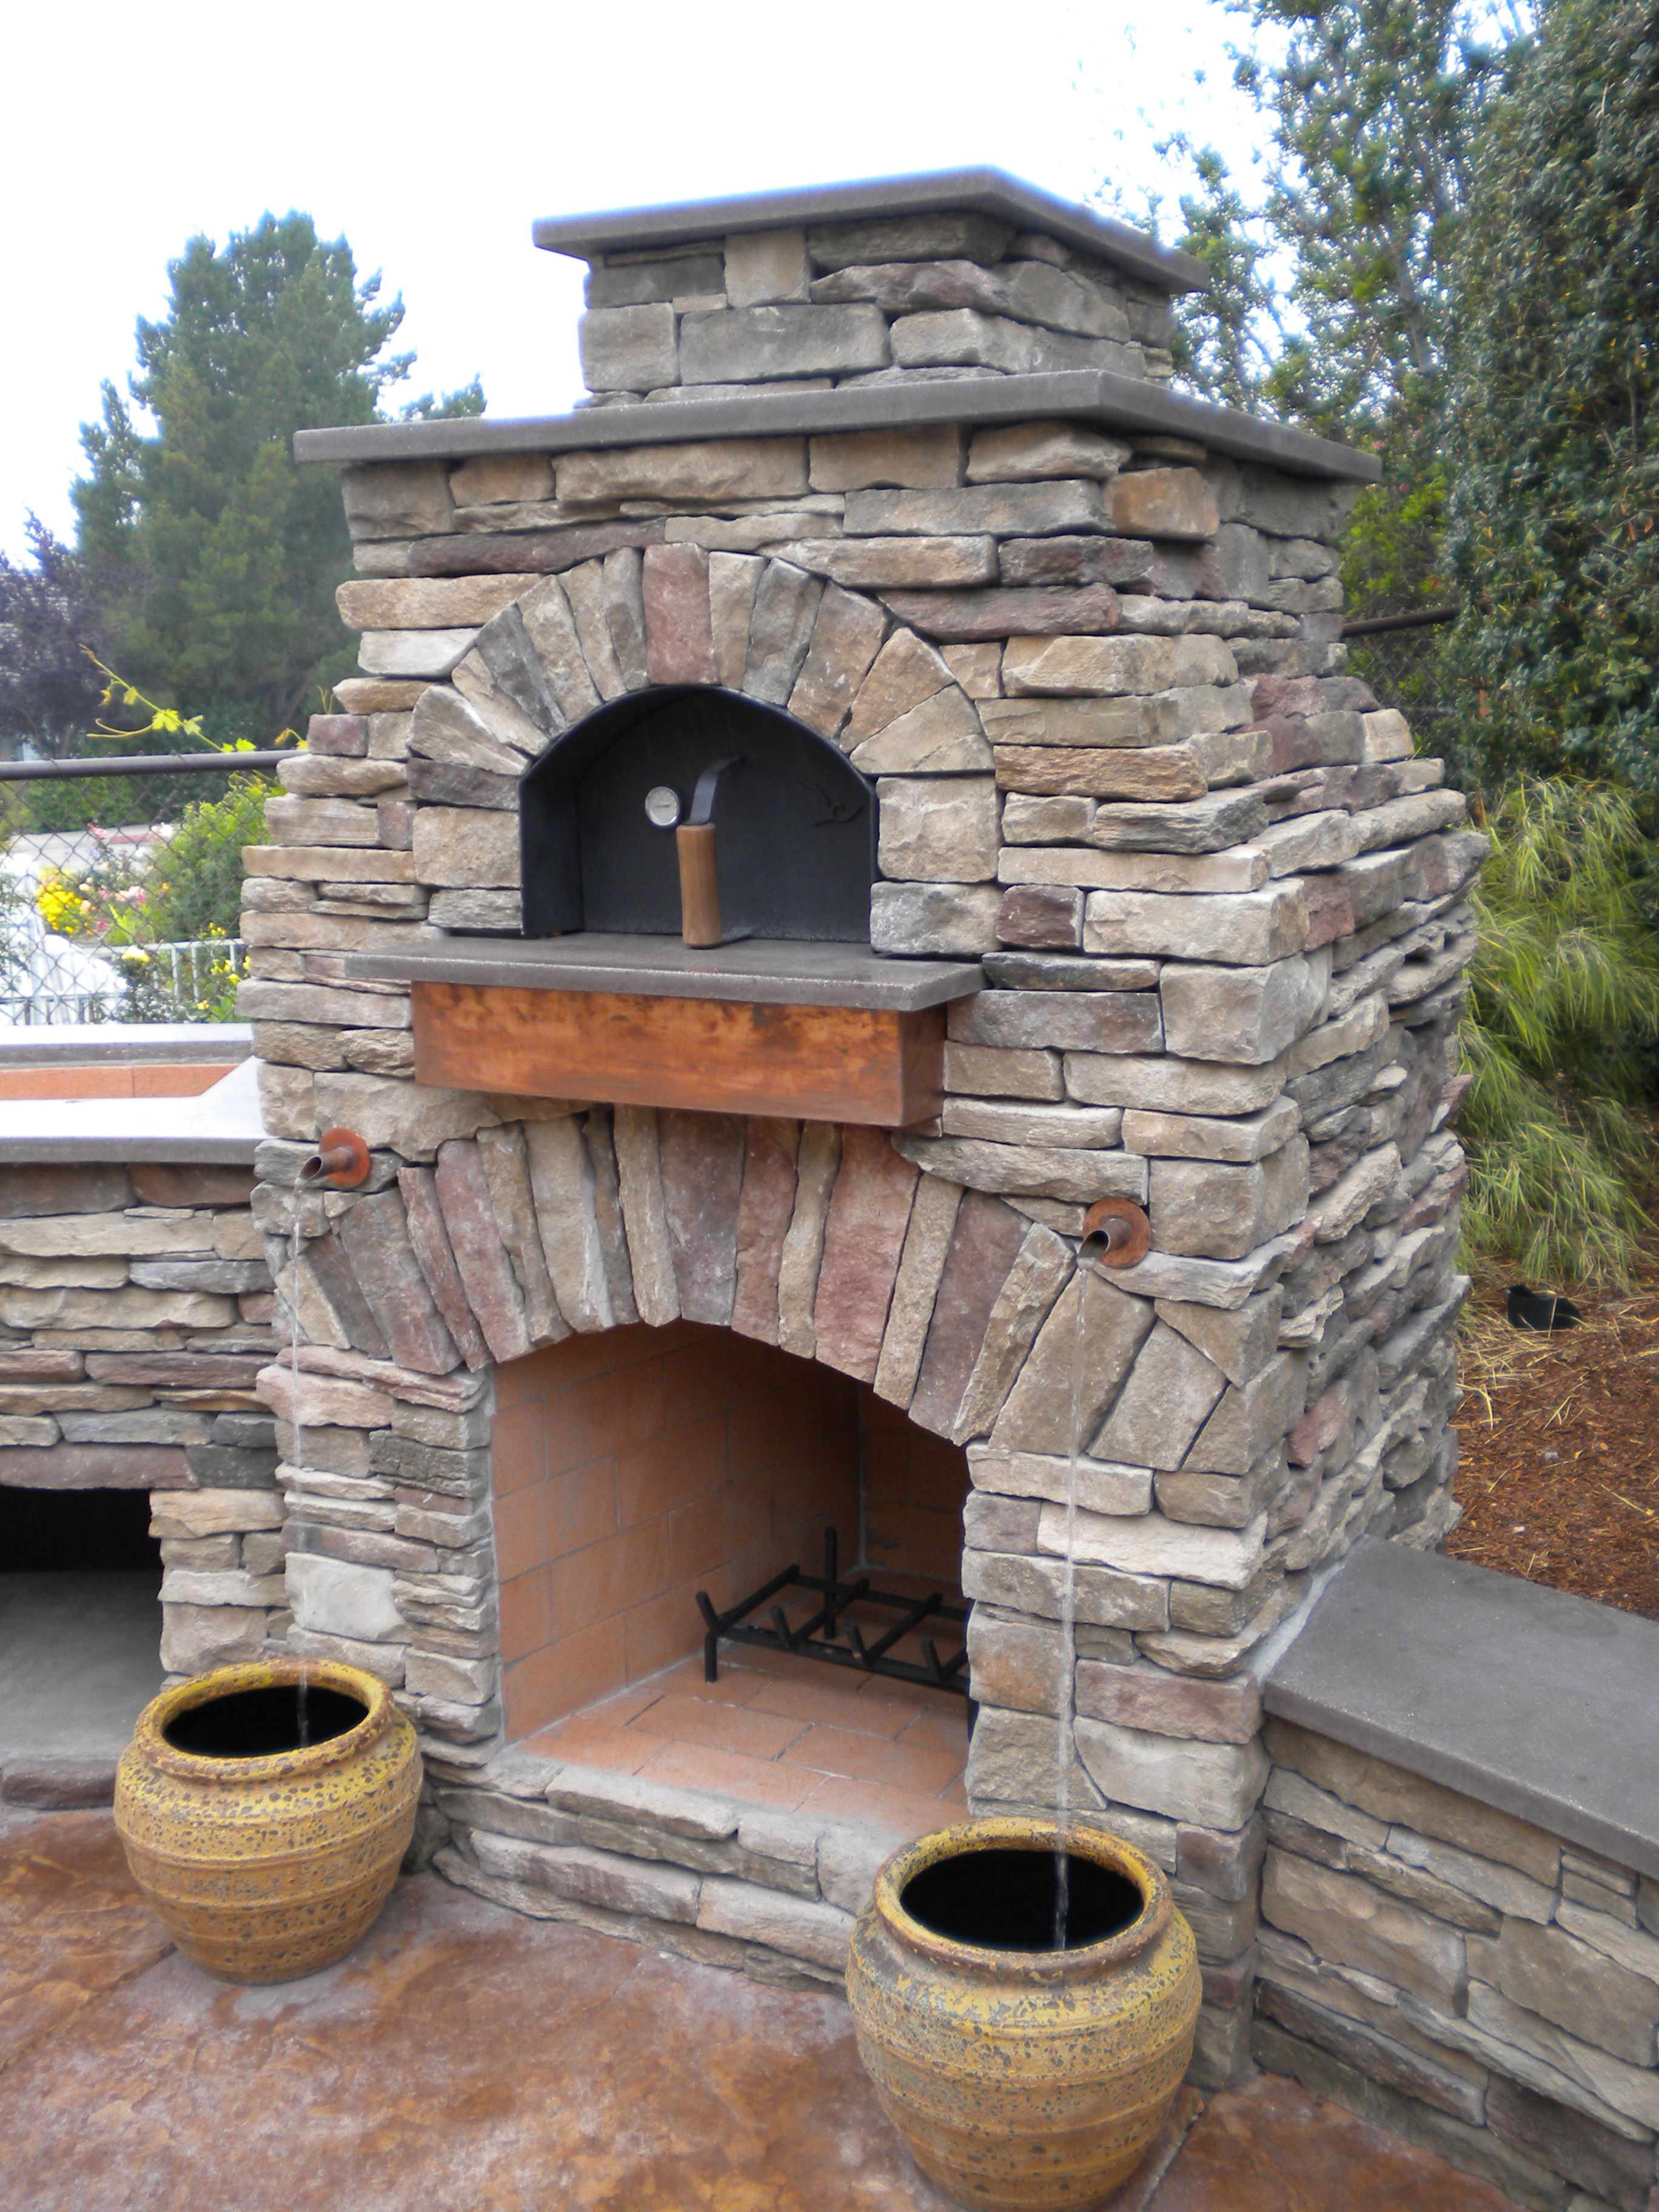 Elegant Exterior, Natural Looks Outdoor Pizza Oven With Stack Stones Materials And  Curved Burner Top As